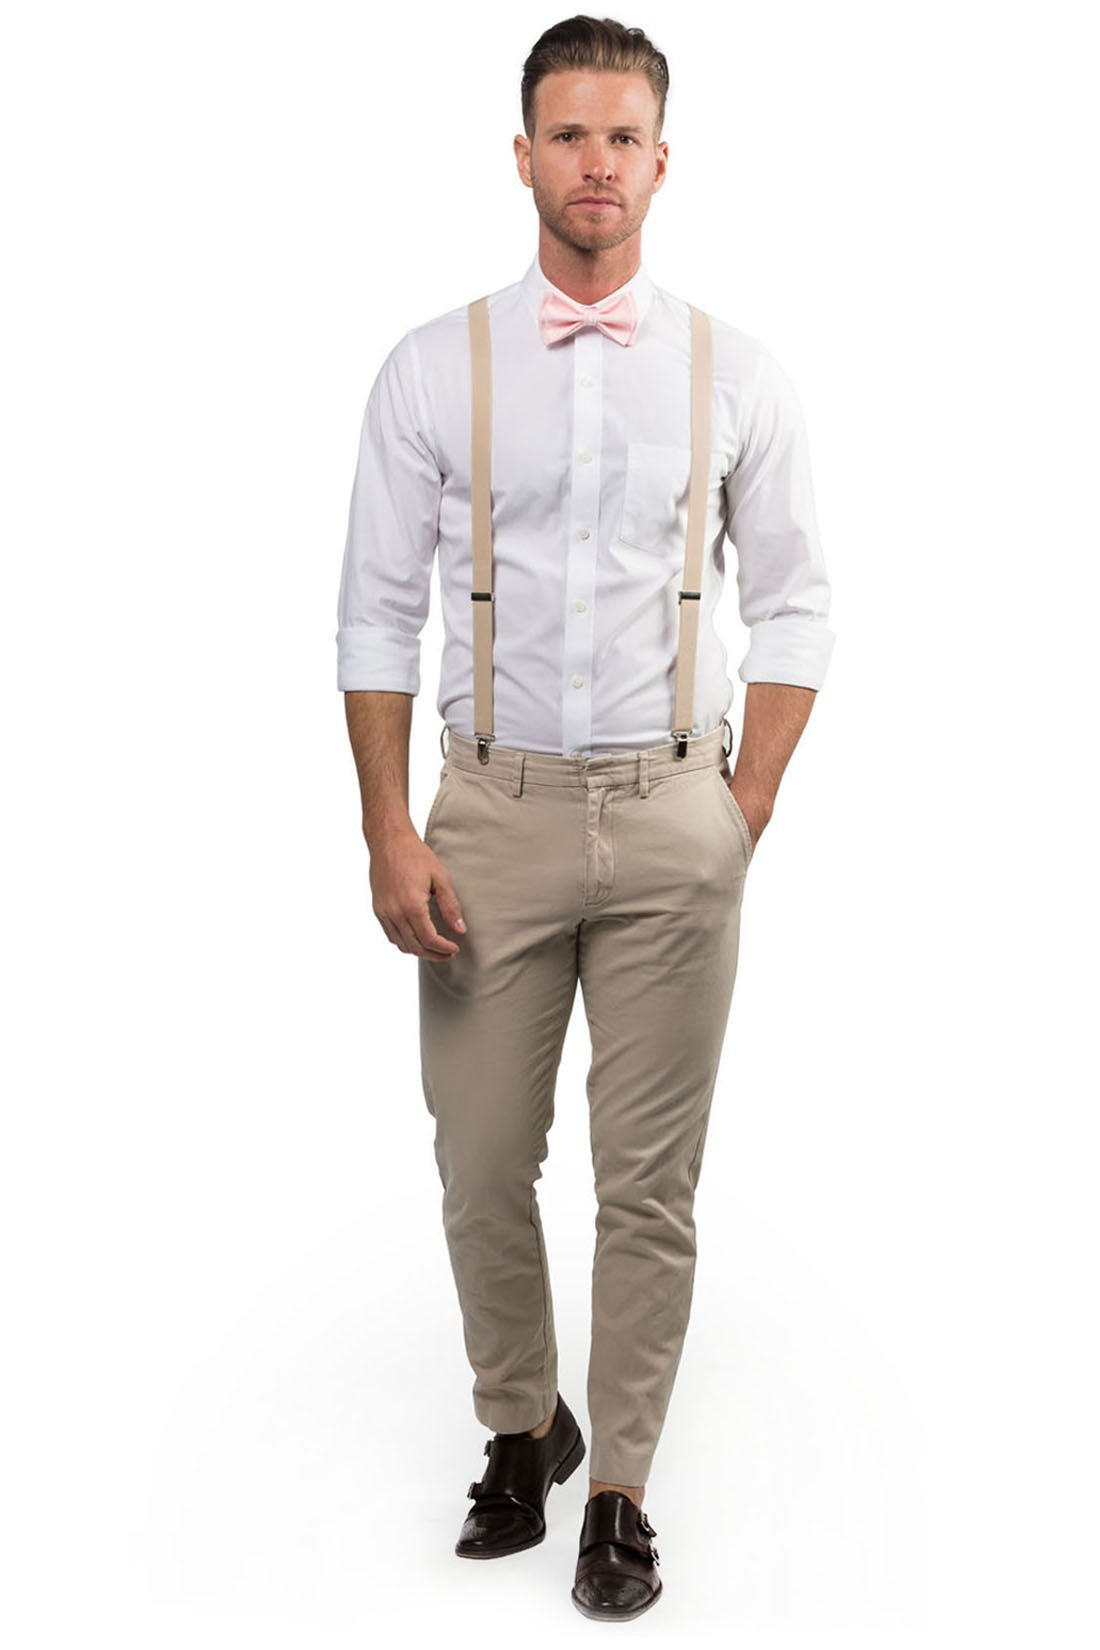 Beige Suspenders & Light Pink Bow Tie